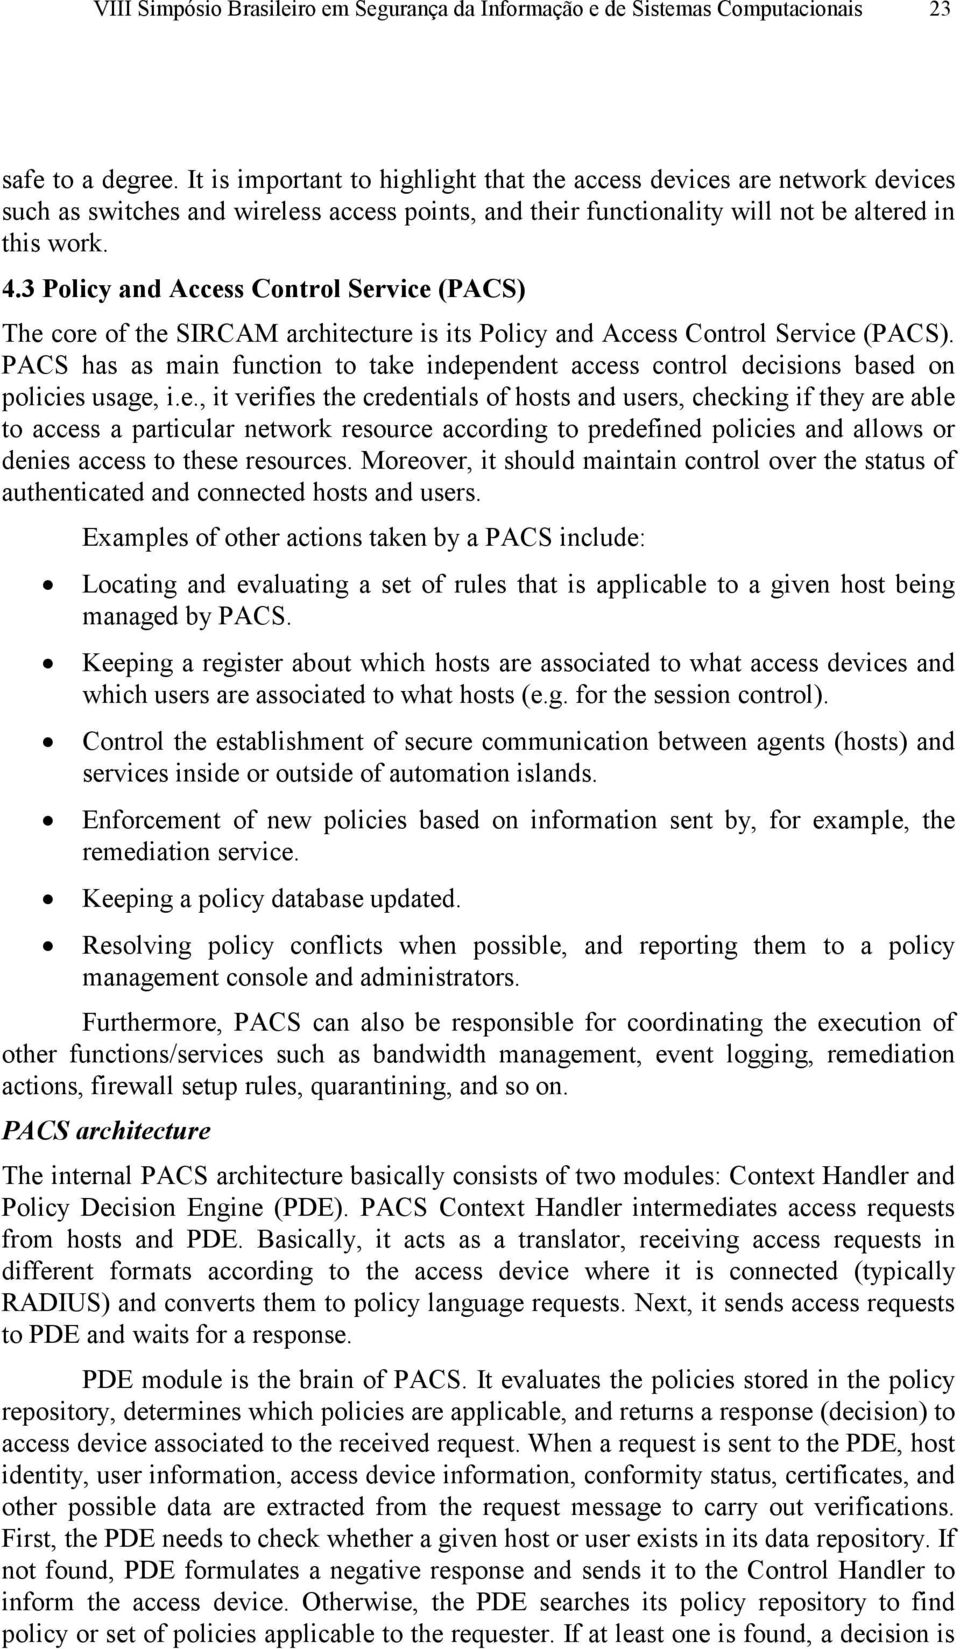 3 Policy and Access Control Service (PACS) The core of the SIRCAM architecture is its Policy and Access Control Service (PACS).